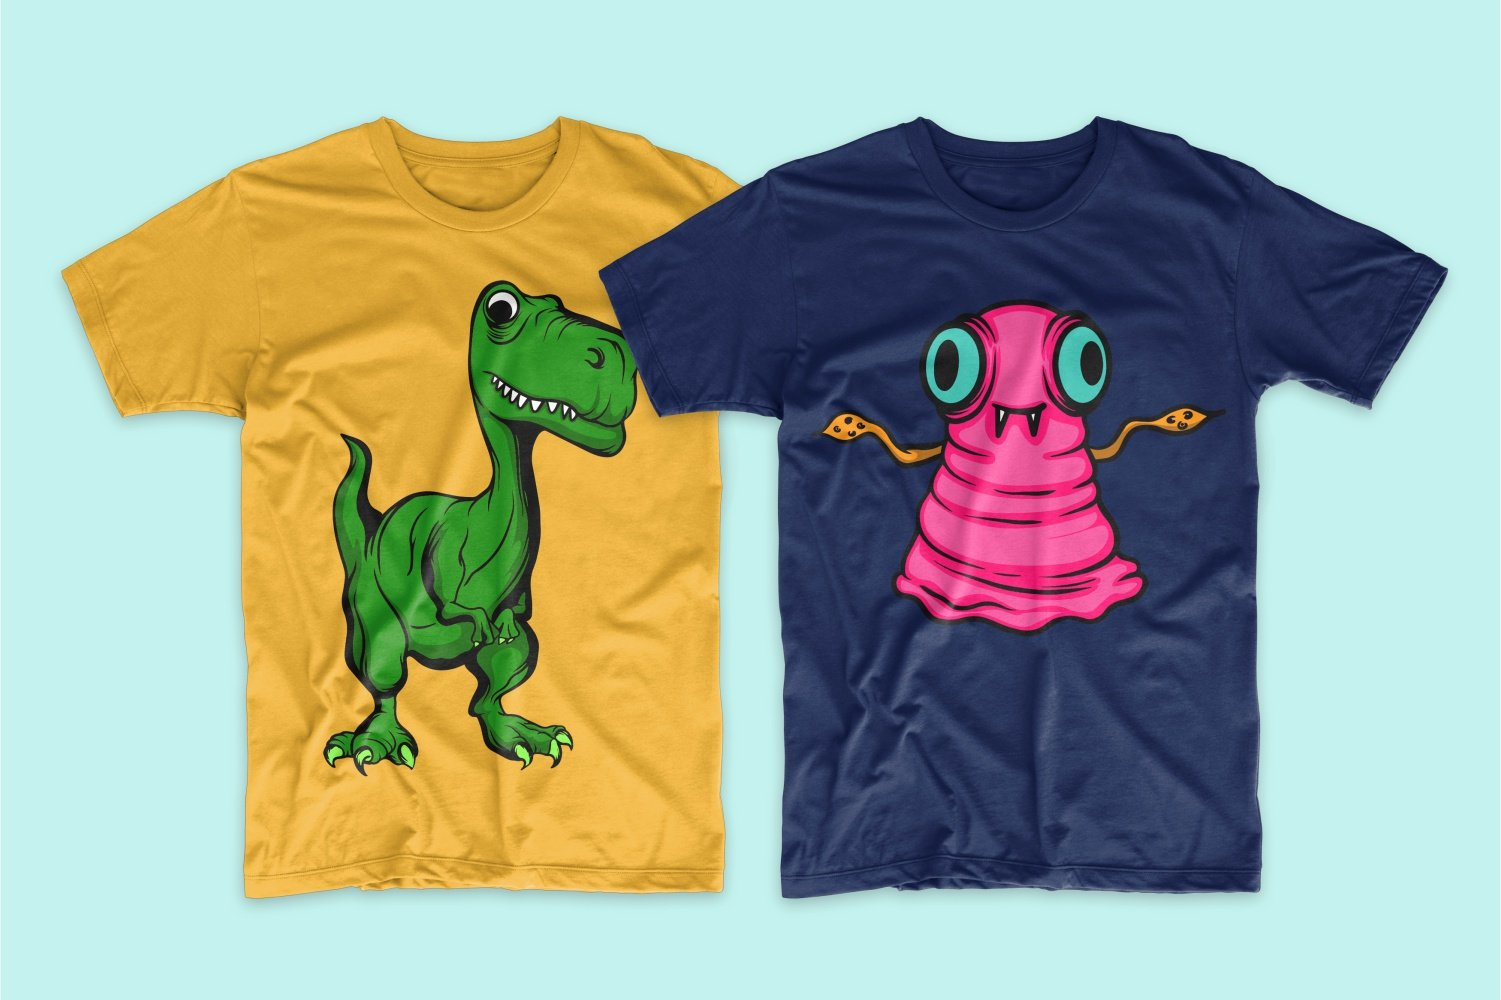 Yellow with a green dragon and blue with a pink worm.